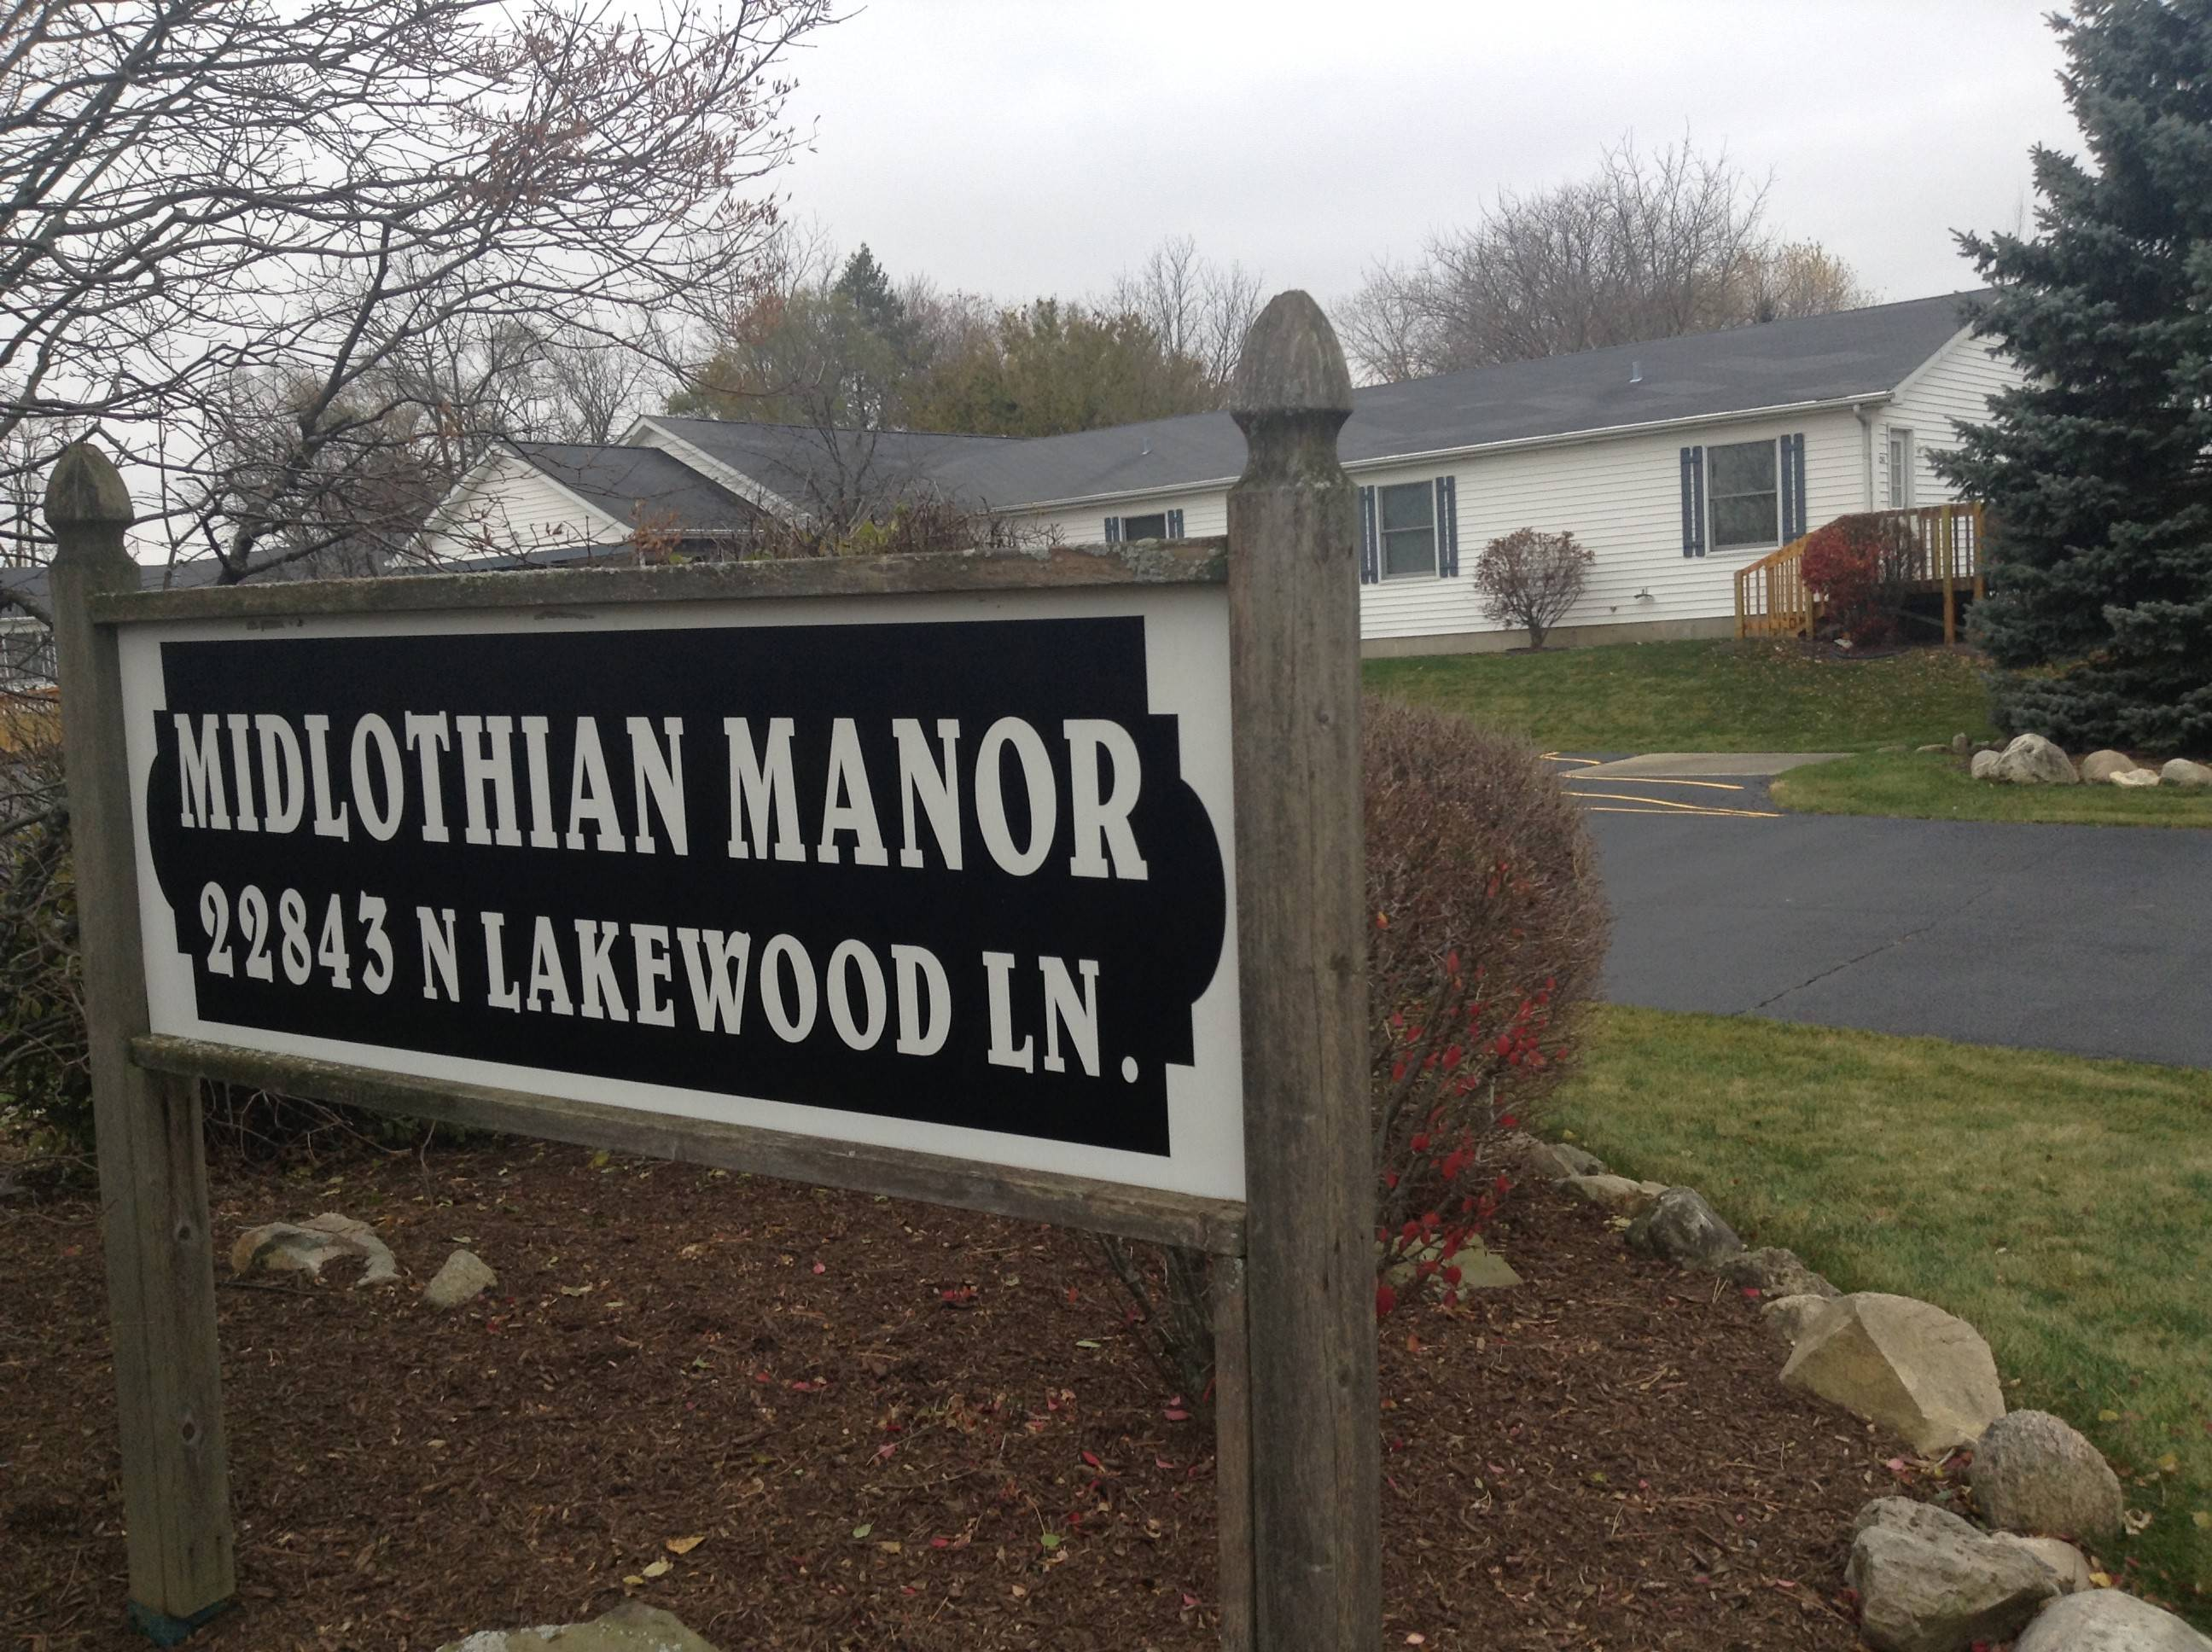 A state appeals court has upheld a lower-court ruling that allows PADS Lake County to place 14 chronically homeless people with mental illness in Midlothian Manor just outside Lake Zurich.